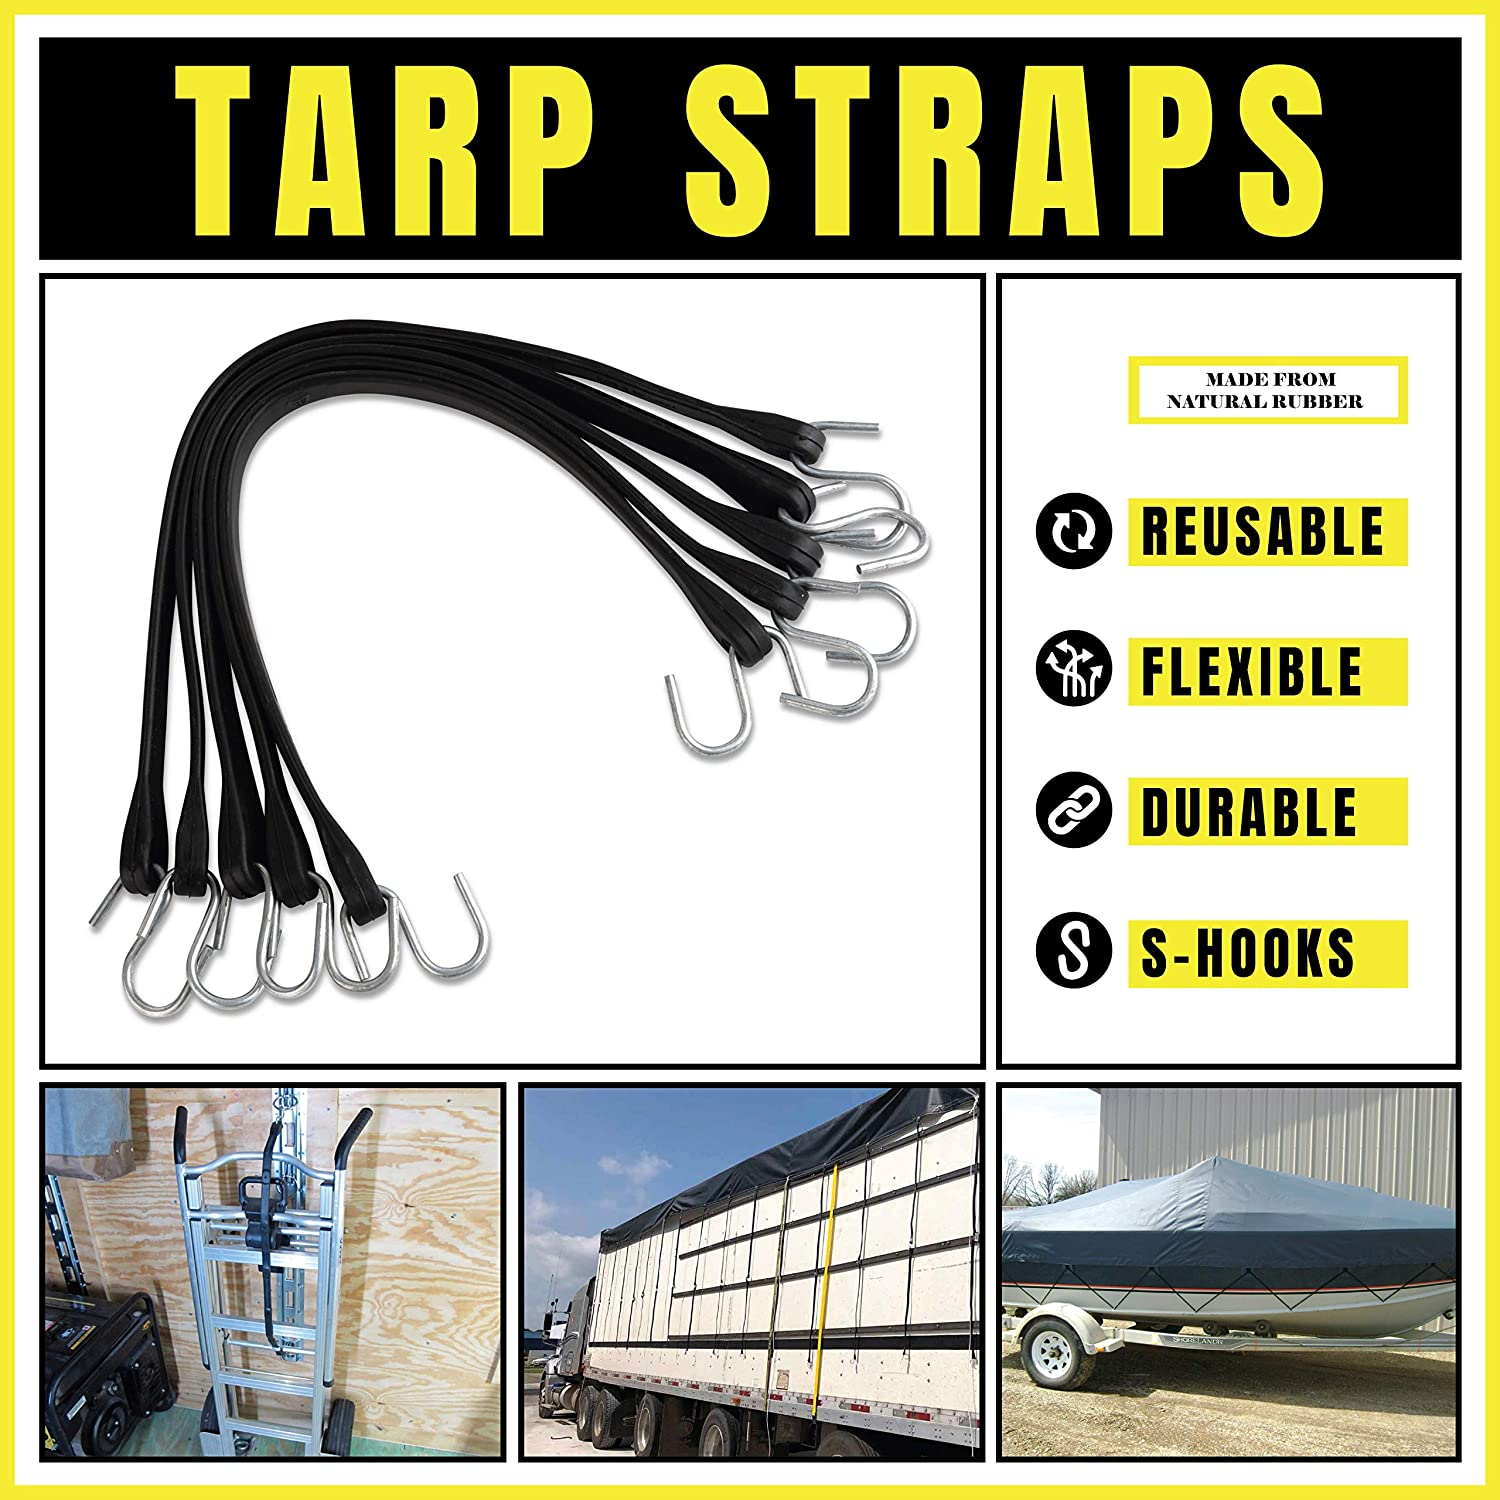 23 max Stretch 10 Pack of 15 Heavy-Duty Natural Rubber Bungee Cords with Hooks 15 kitchentoolz Rubber Tarp Straps